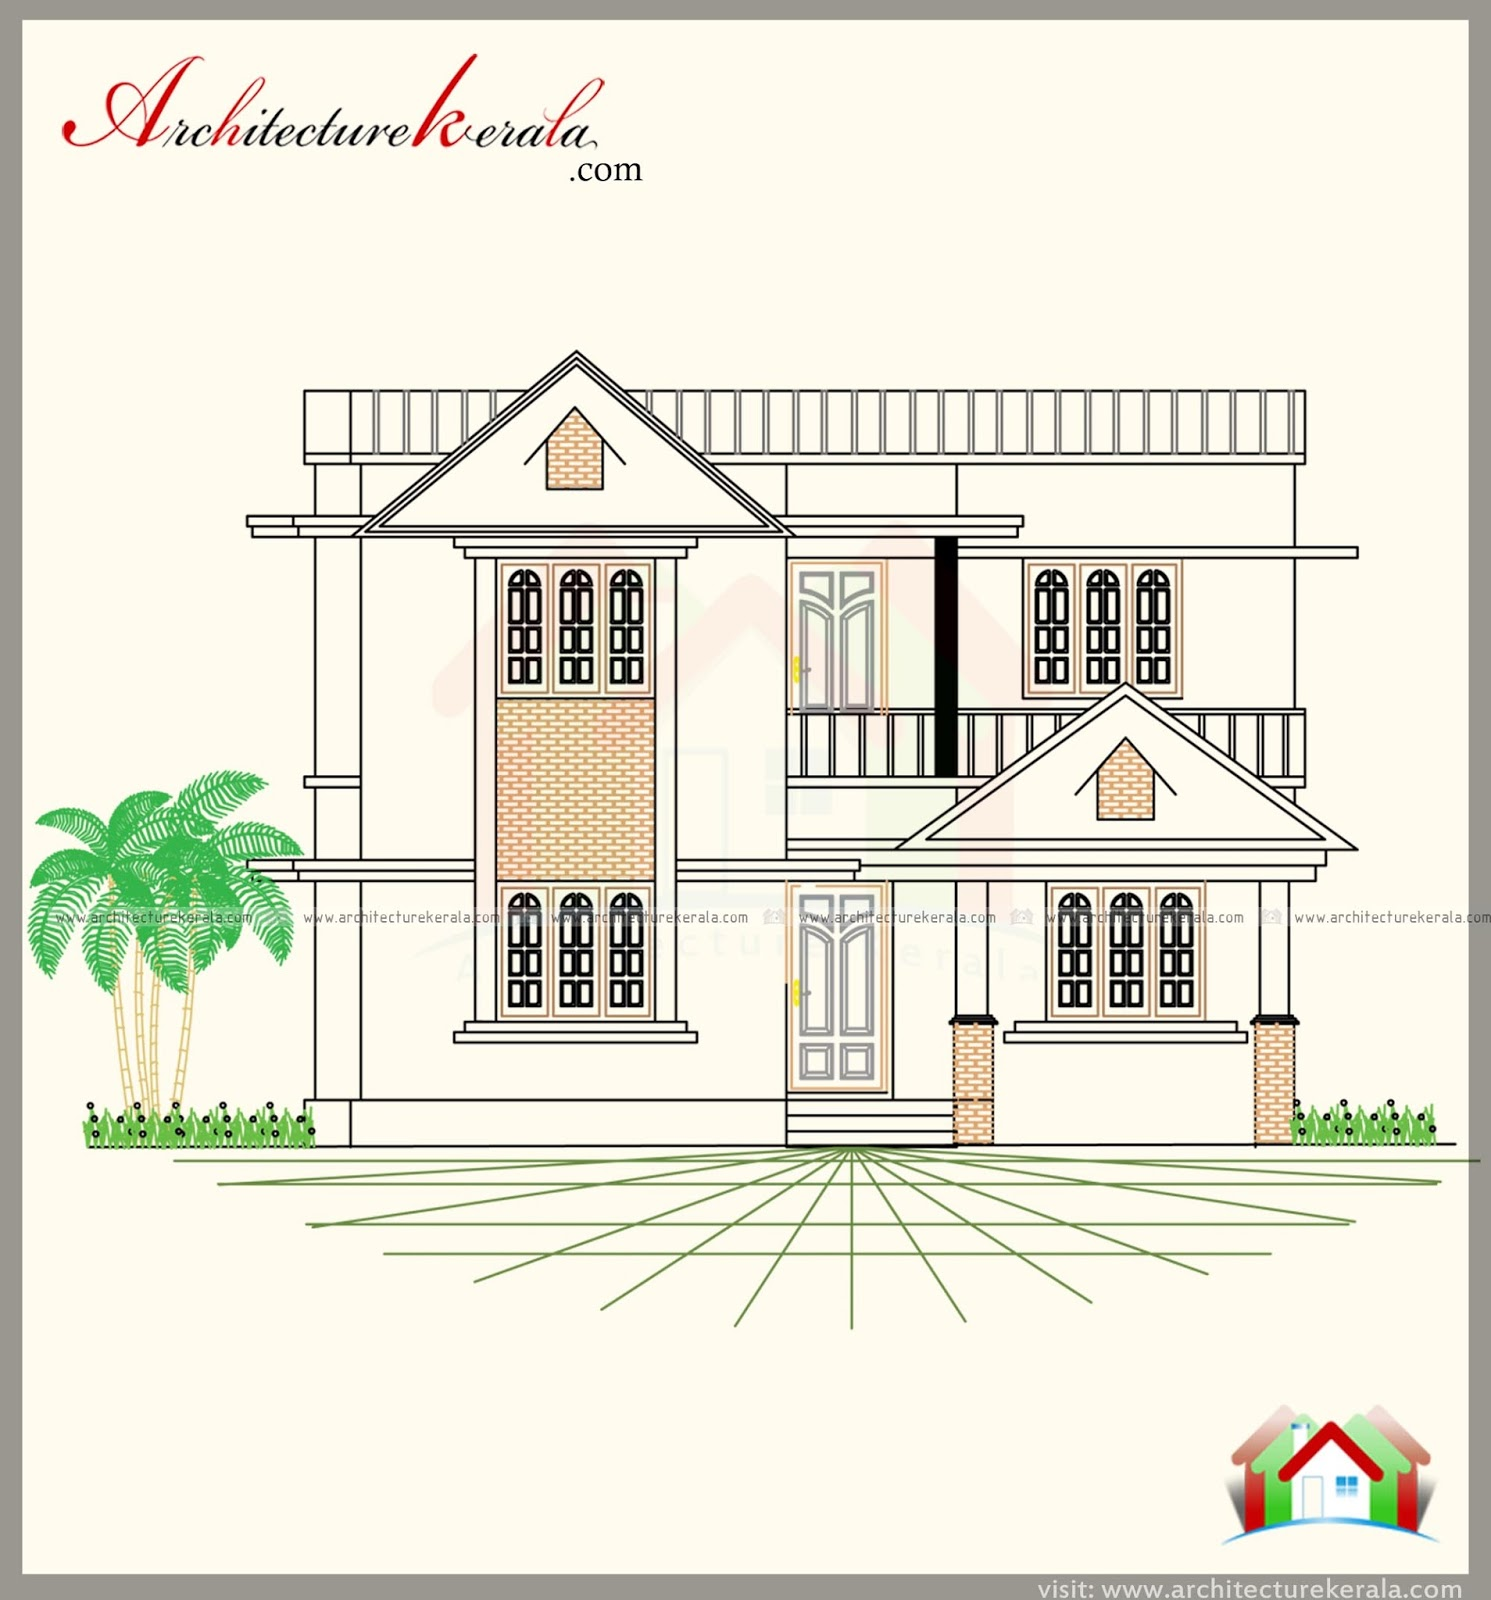 MODERN STYLE HOUSE PLAN AND TWO DIFFERENT ELEVATIONS